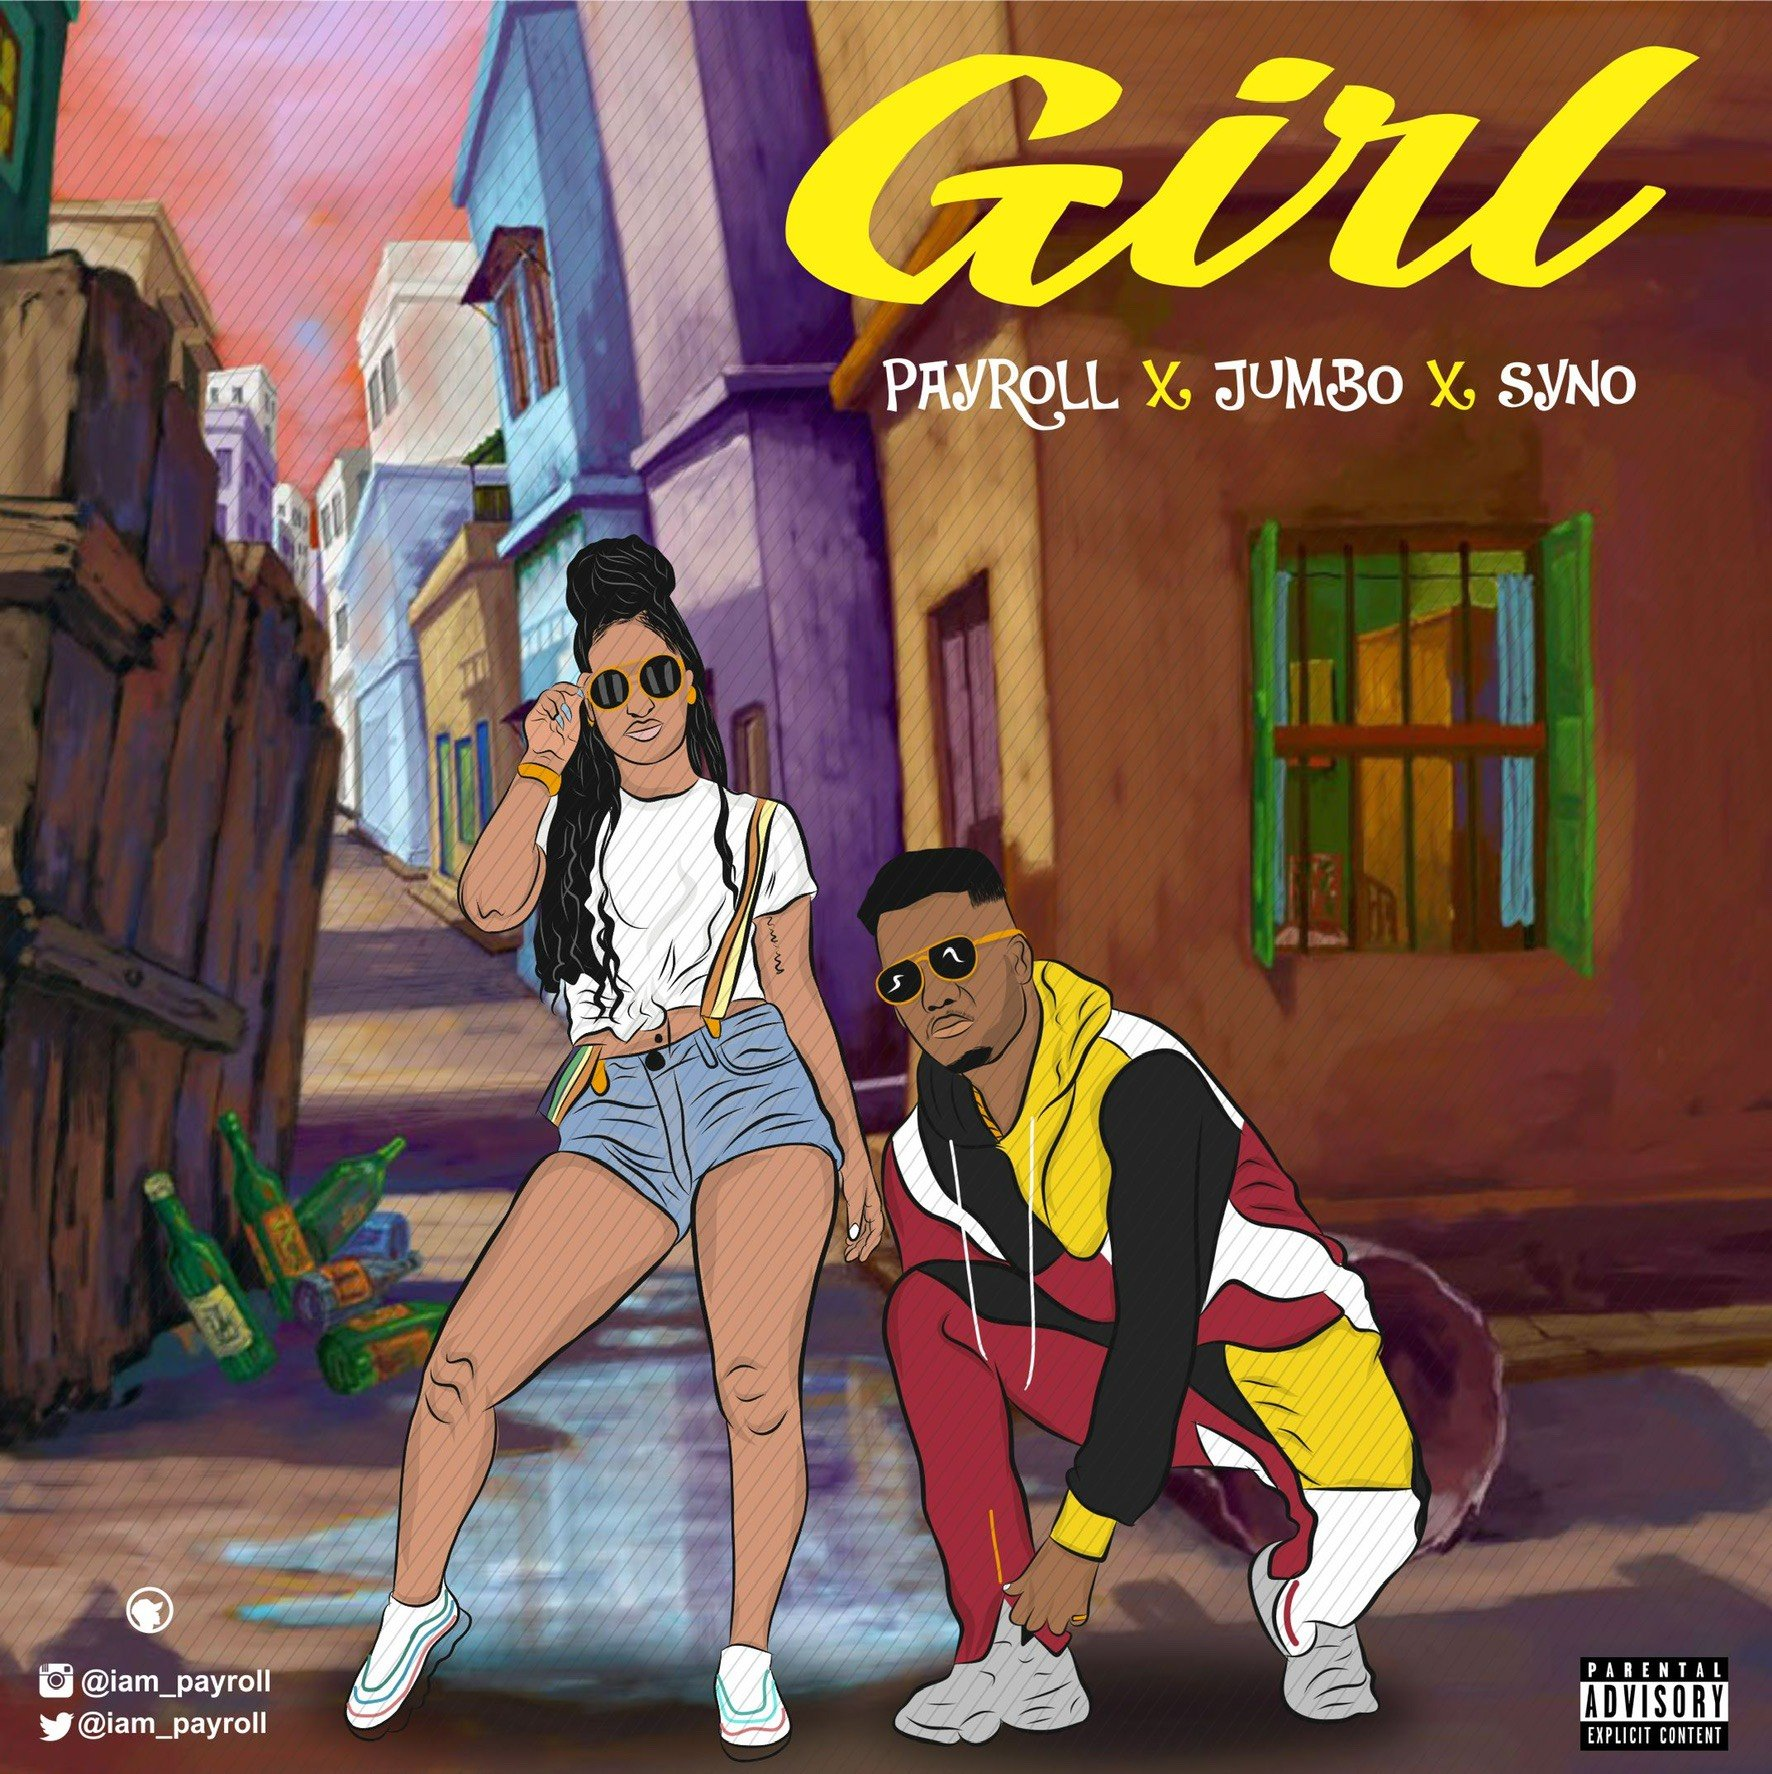 Payroll – Girl ft. Jumbo x Syno